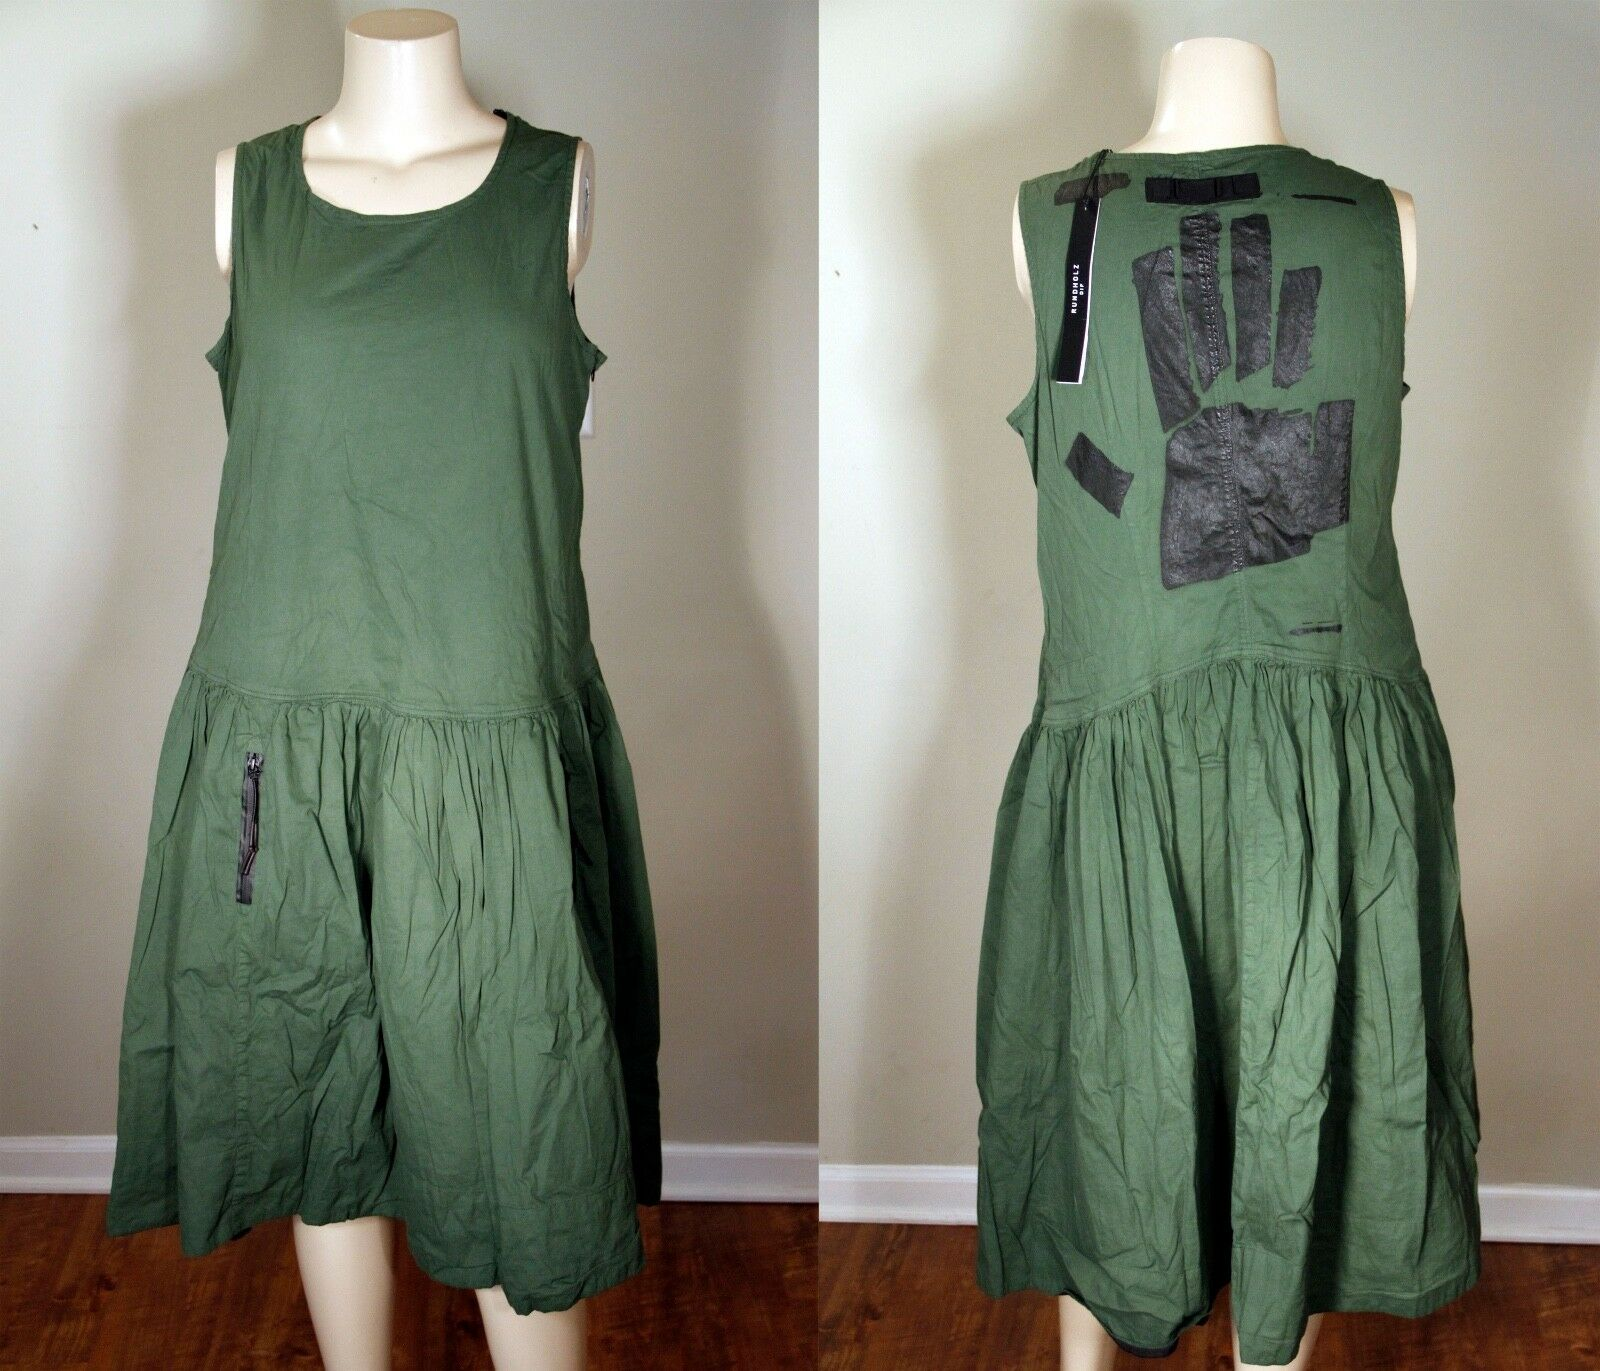 SALE  NWT - RUNDHOLZ DIP -GREEN DRESS WITH HAND PRINT -XL FANTASTIC